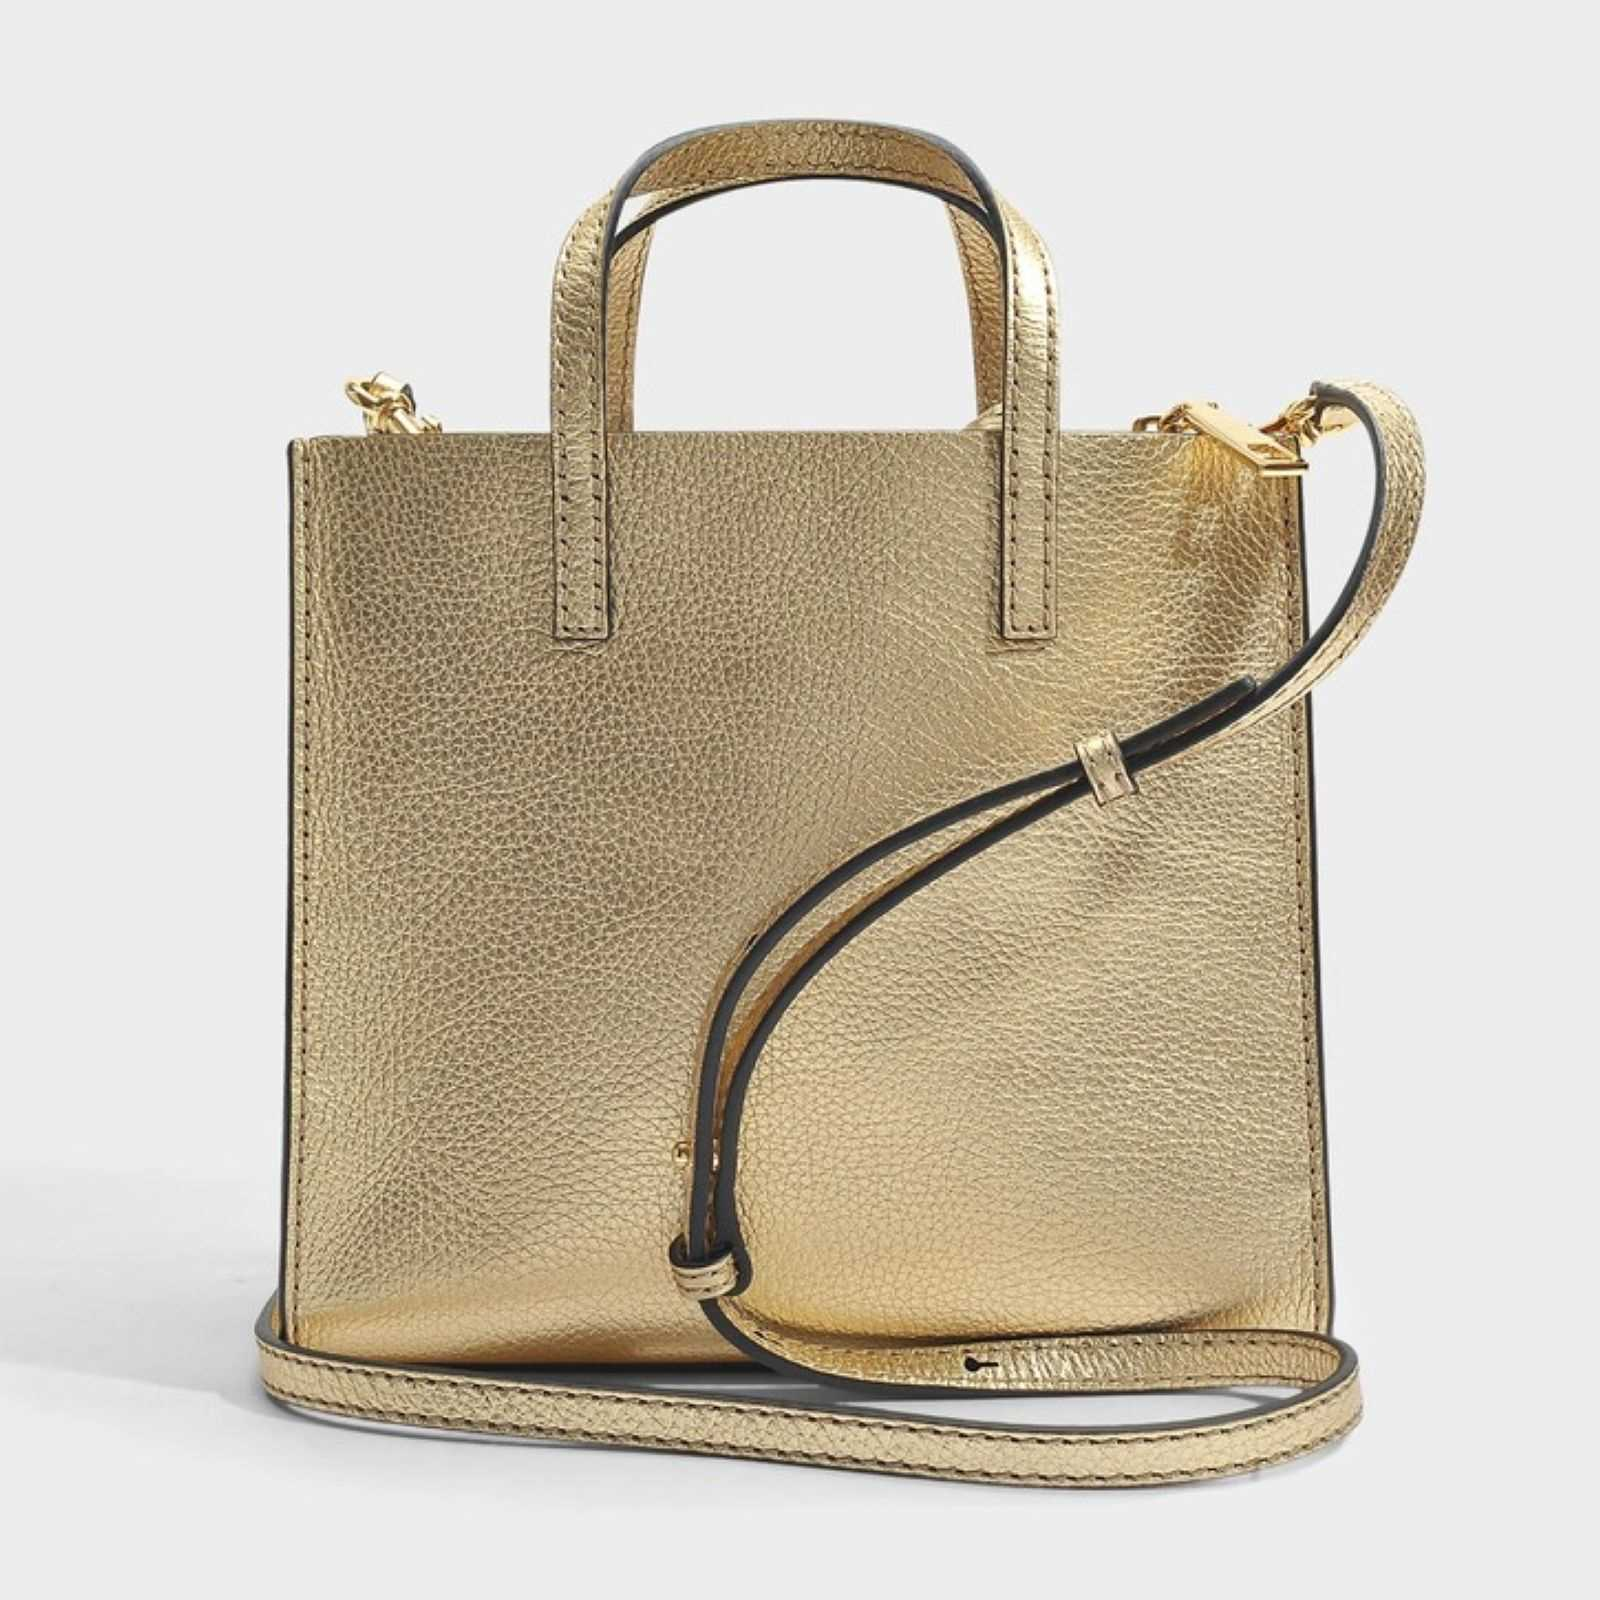 Marc Jacobs The mini grind - Sac à main en cuir - doré   BrandAlley 7bb753b74b22